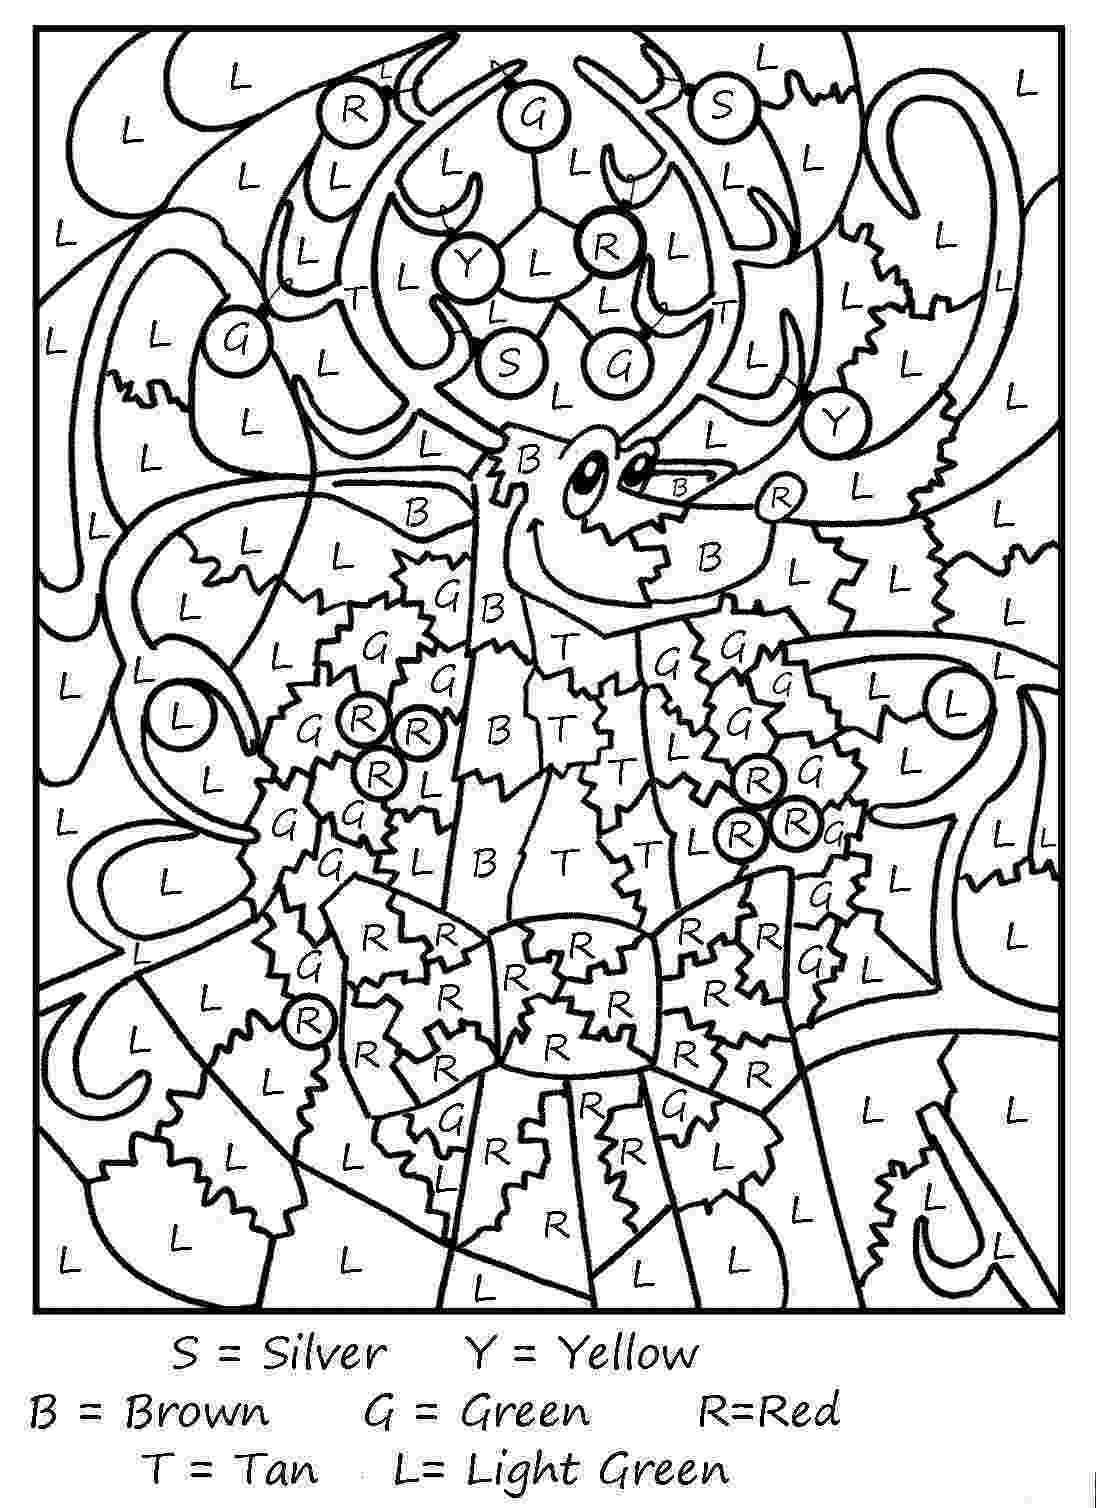 chirstmas coloring pages christmas colour by numbering hd wallpapers blog pages chirstmas coloring